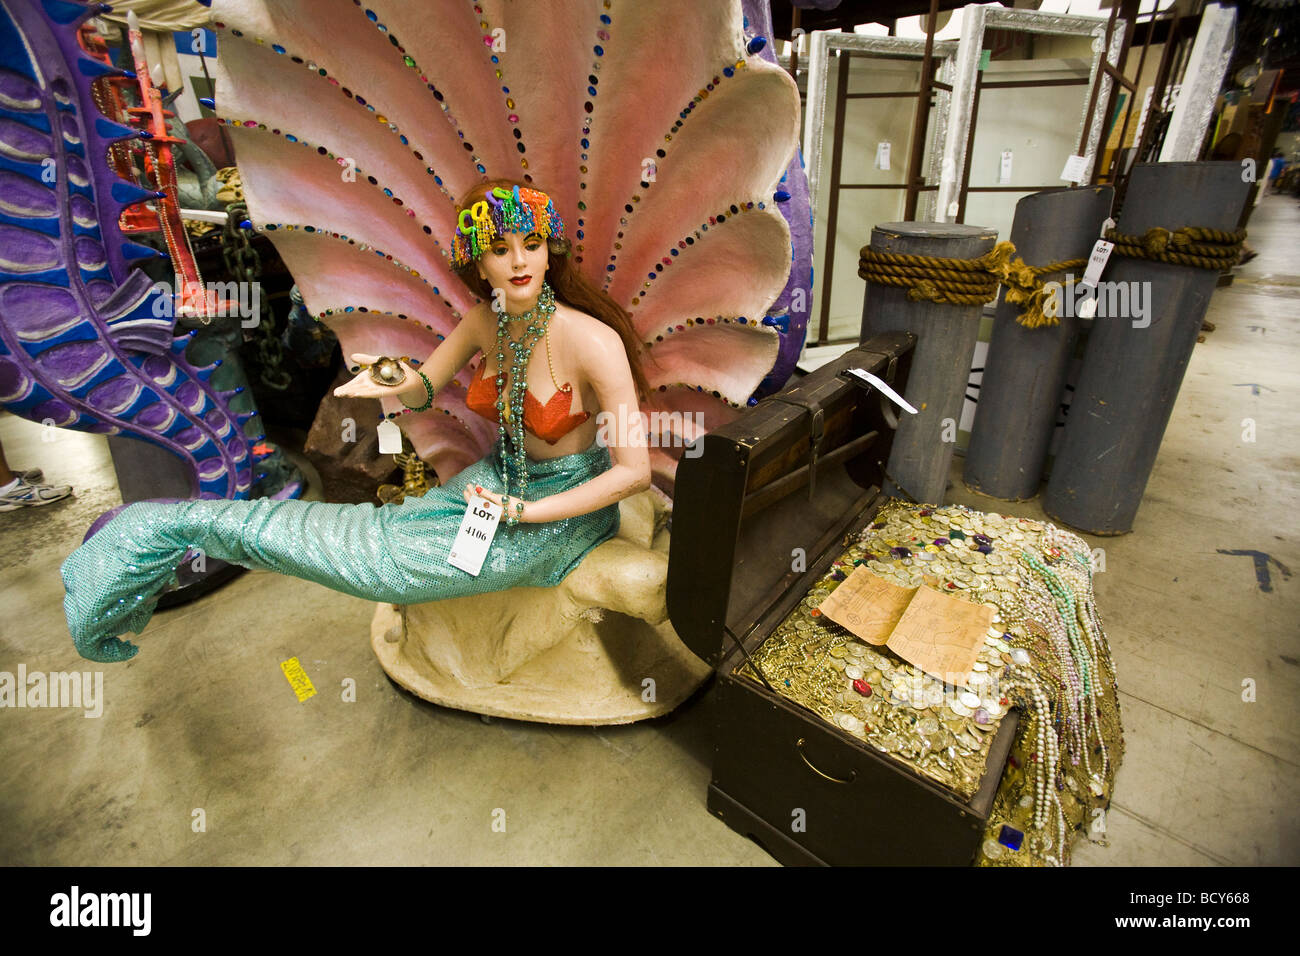 20th Century Props props prop prop house North Hollywood Los Angeles - Stock Image